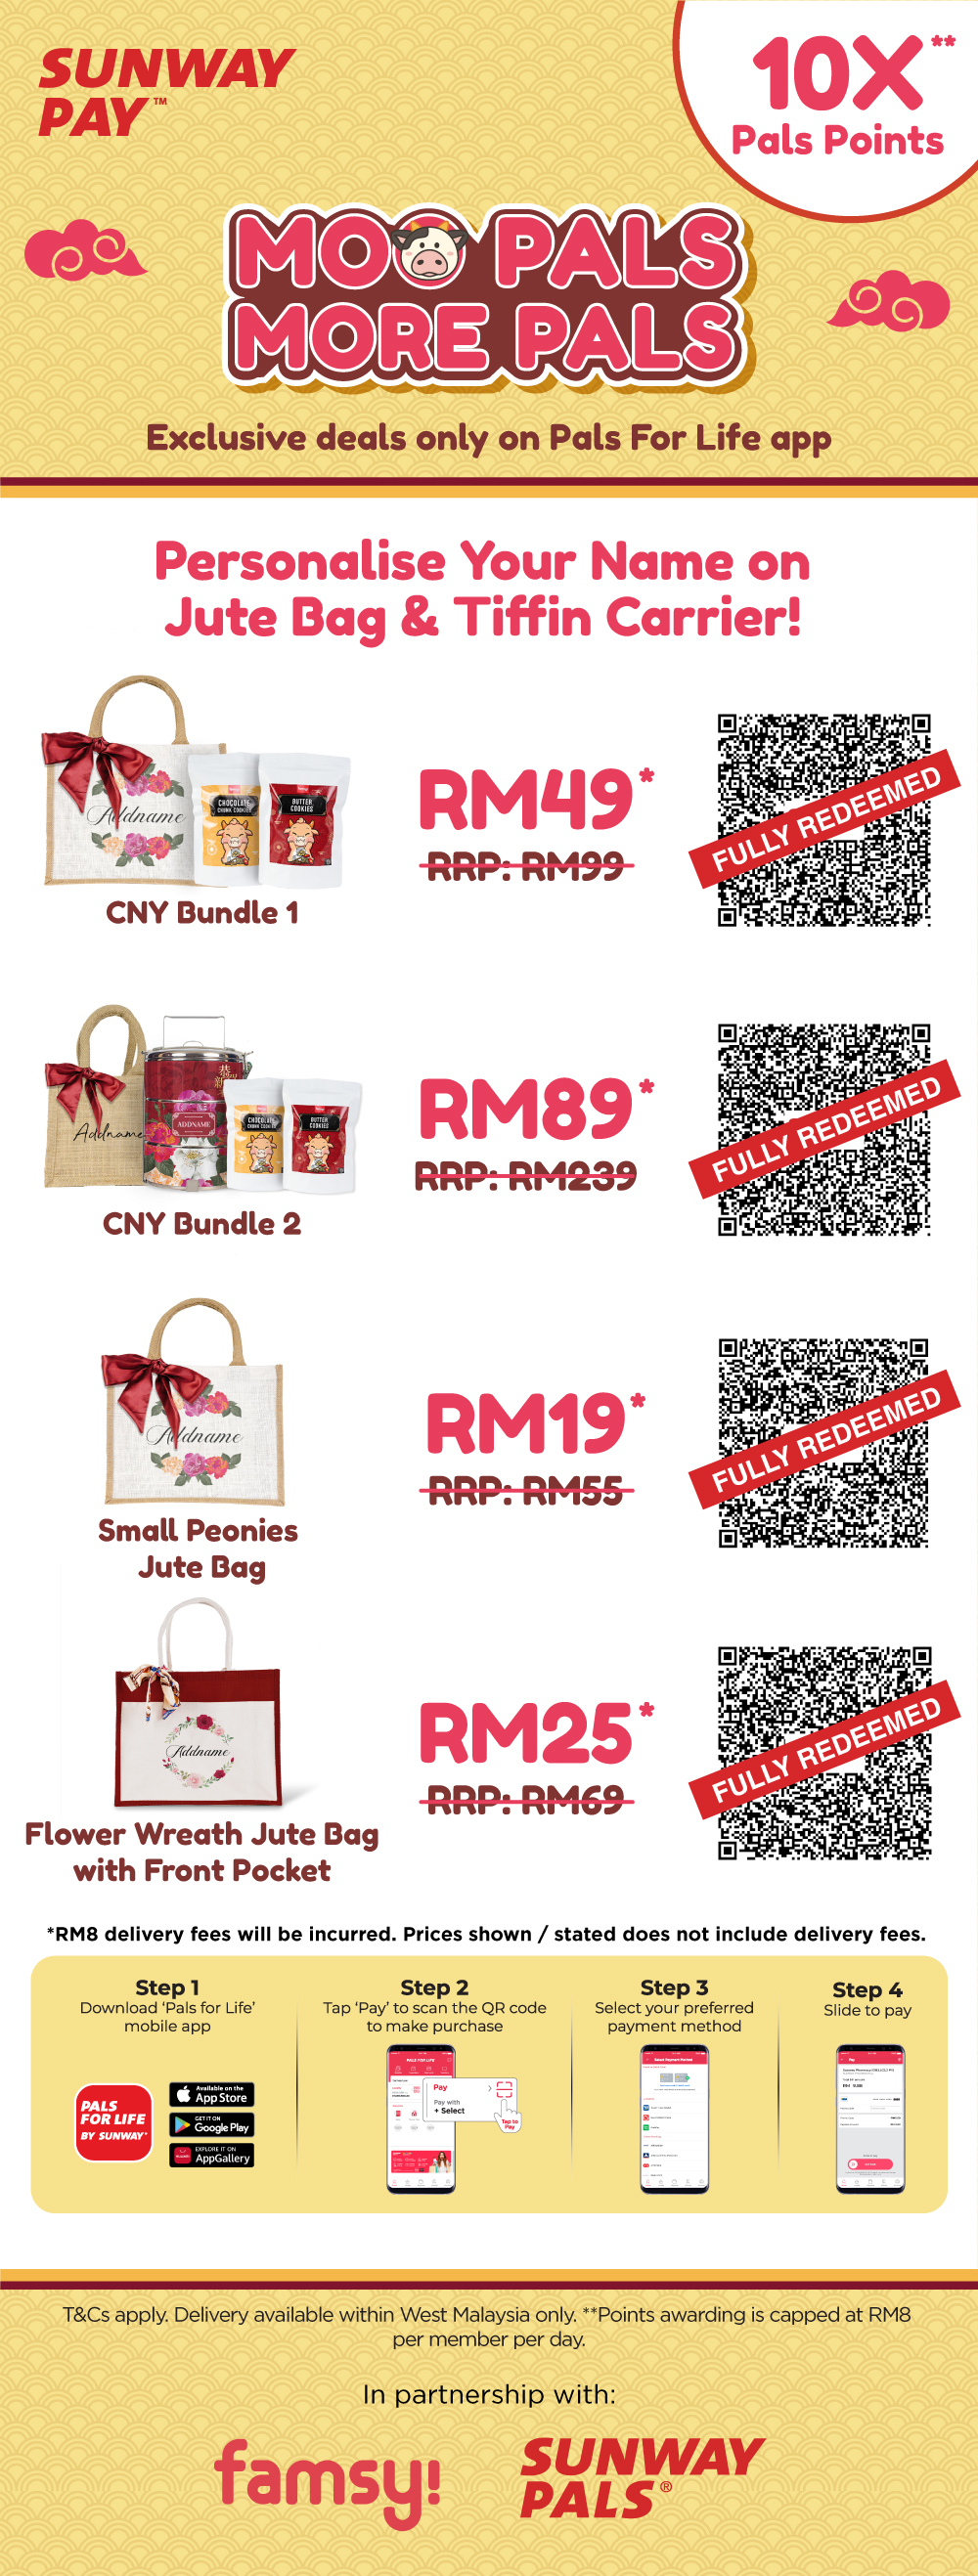 10X Pals Points & Special Price on Personalised CNY Items